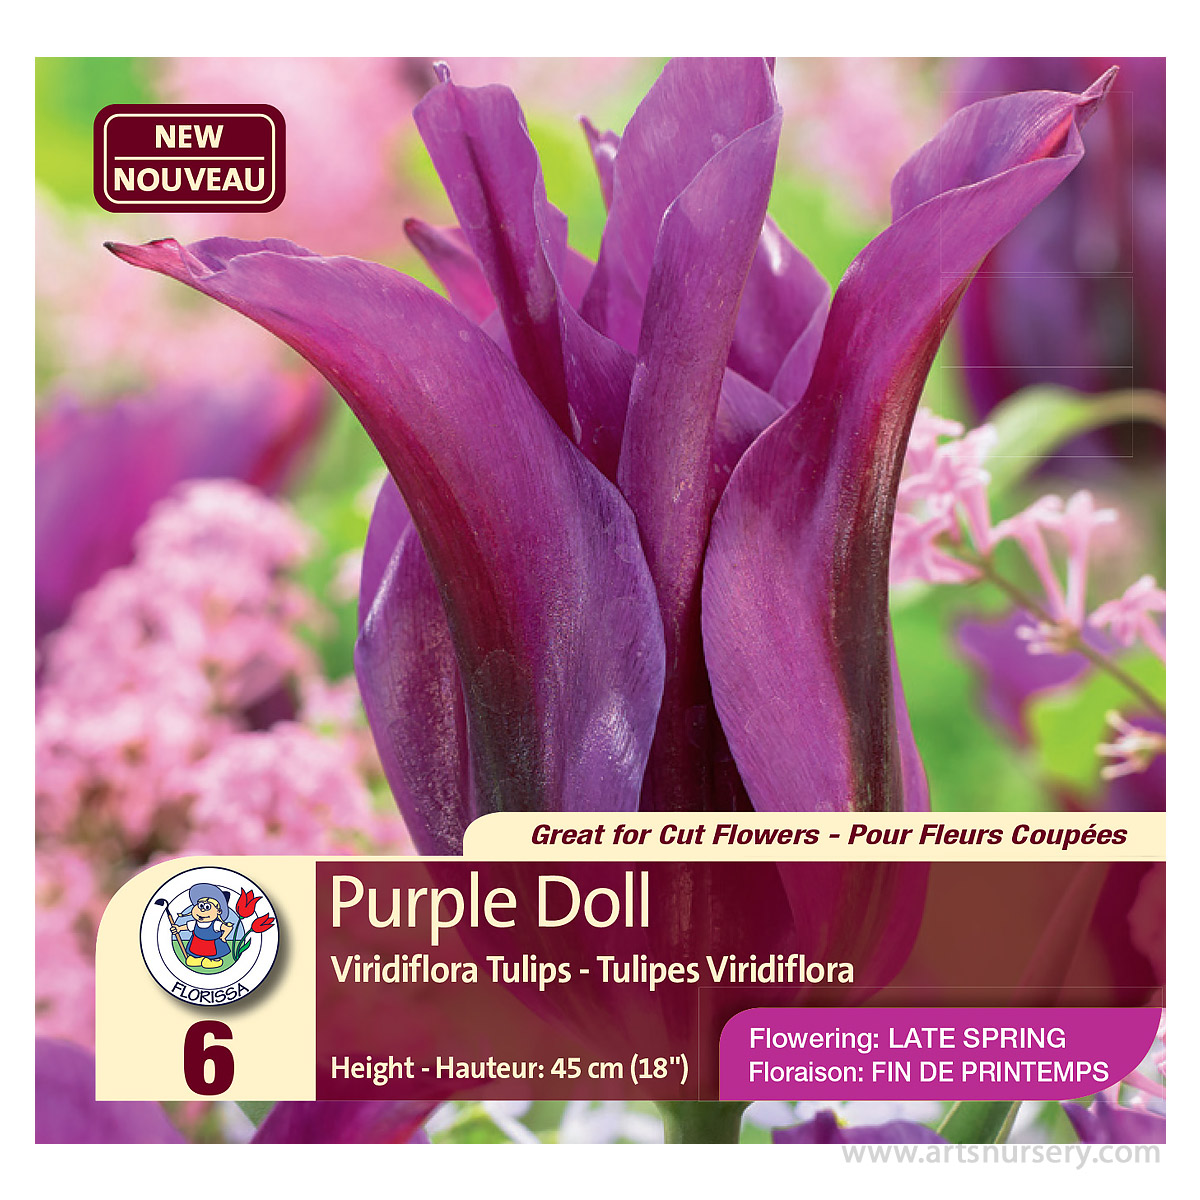 Tulip 'Purple Doll' (Viridiflora) Bulbs